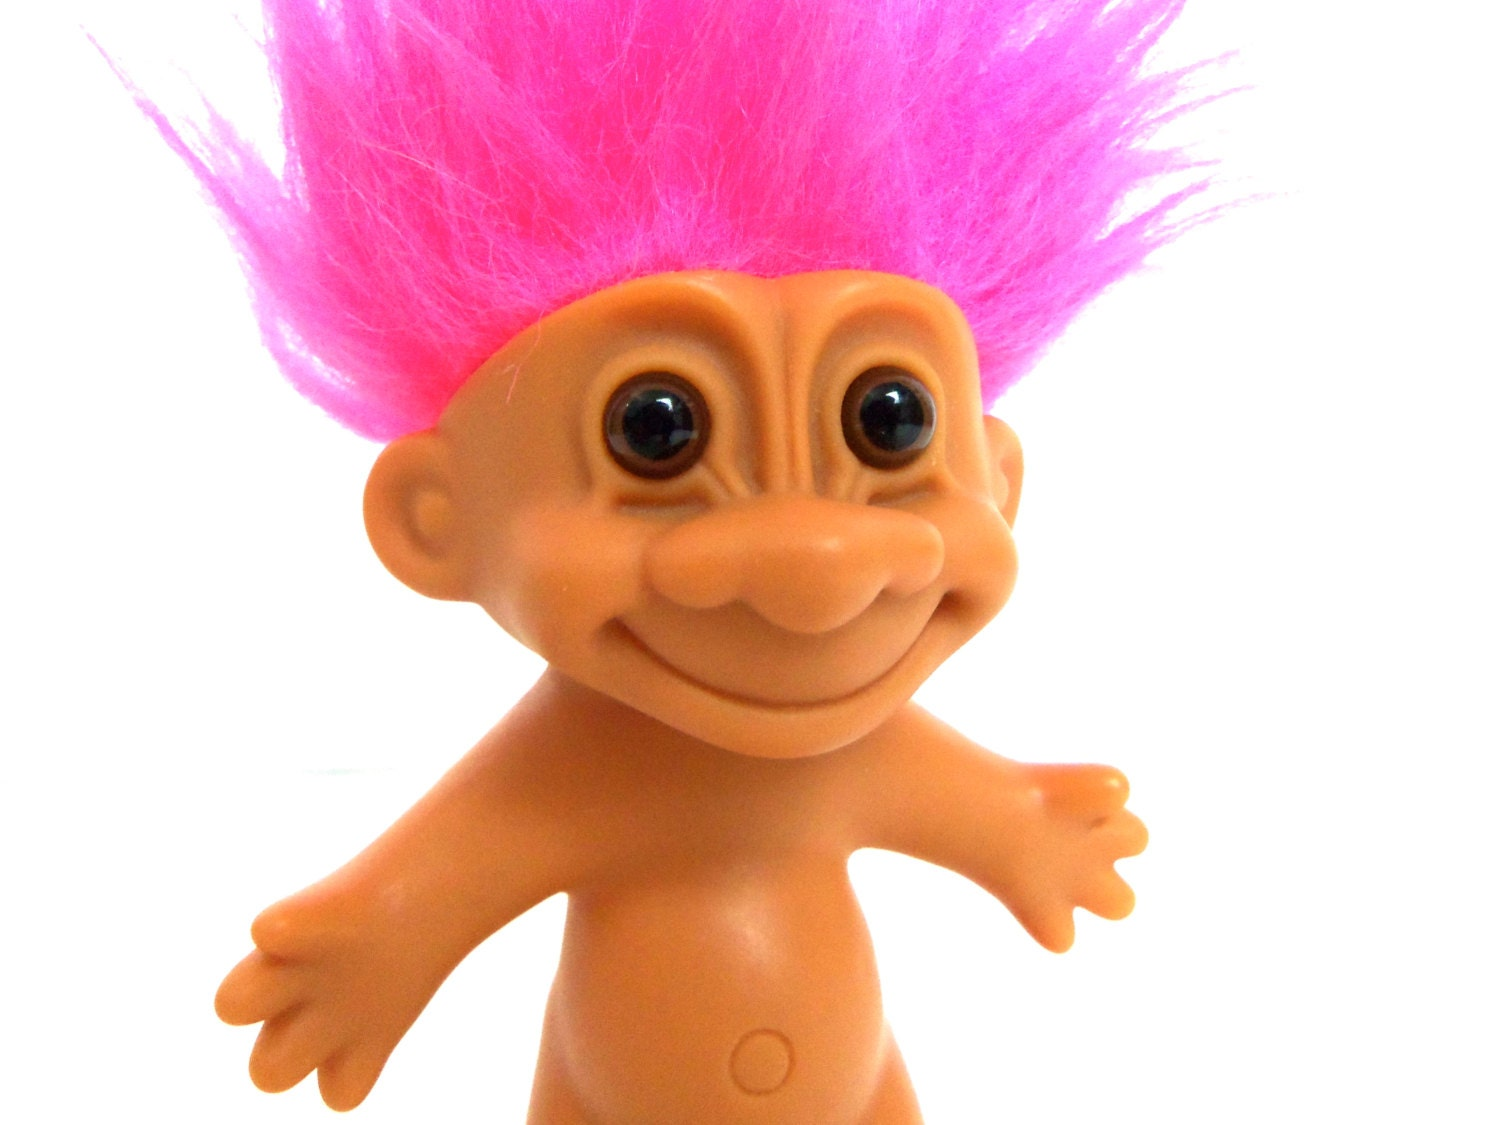 Vtg Russ Troll Doll With Bright Neon Pink Hair Hard Plastic